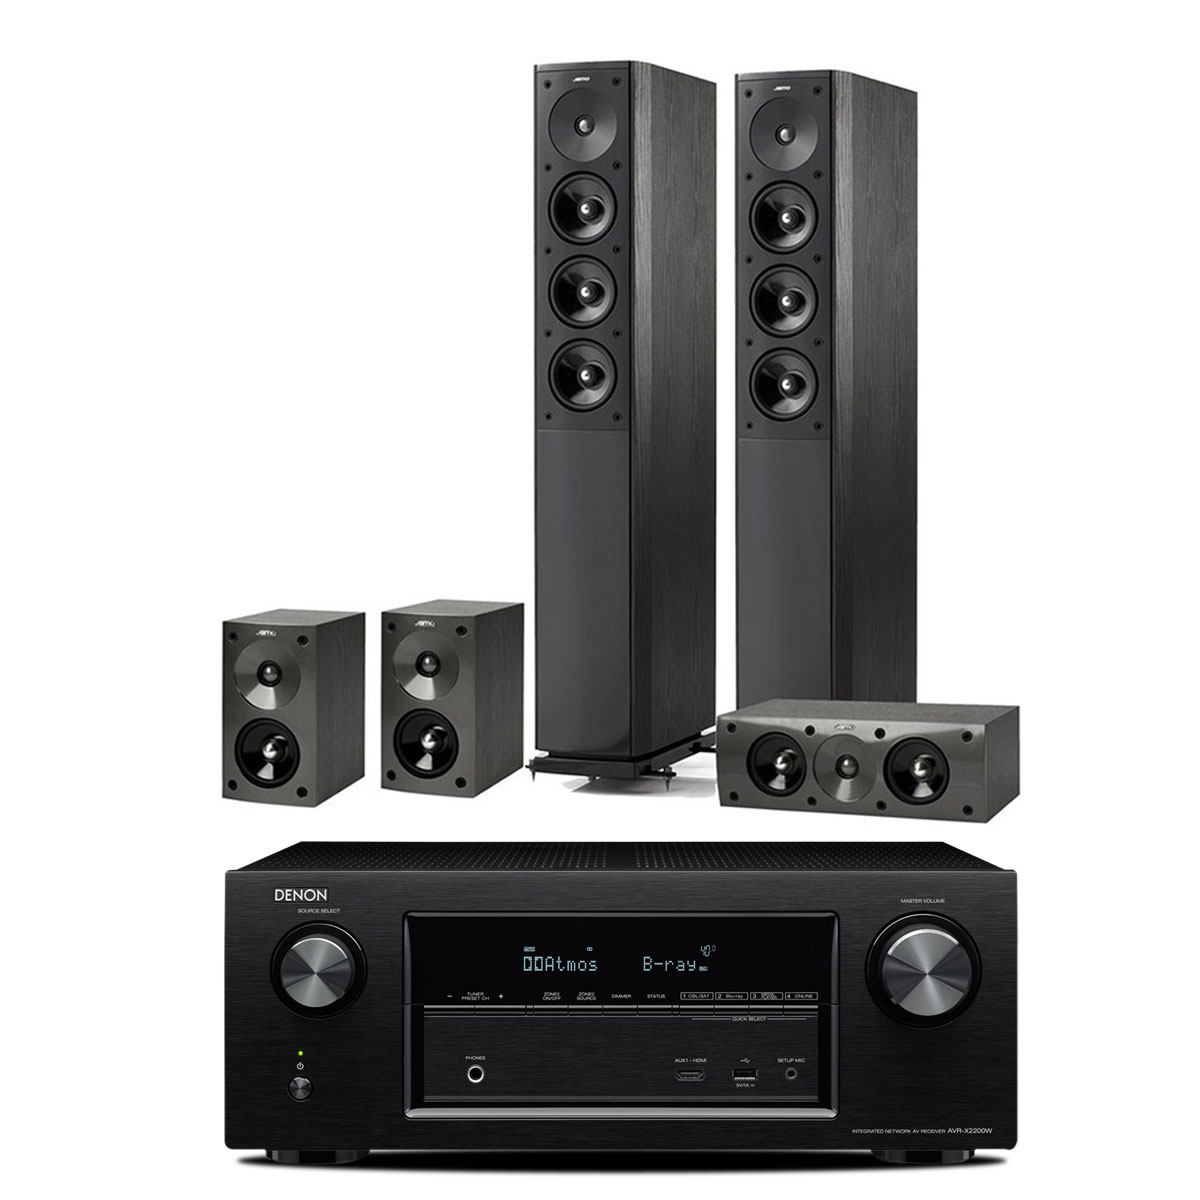 denon avr x2200w noir jamo s 608 hcs 3 black ash ensemble home cin ma denon sur ldlc. Black Bedroom Furniture Sets. Home Design Ideas